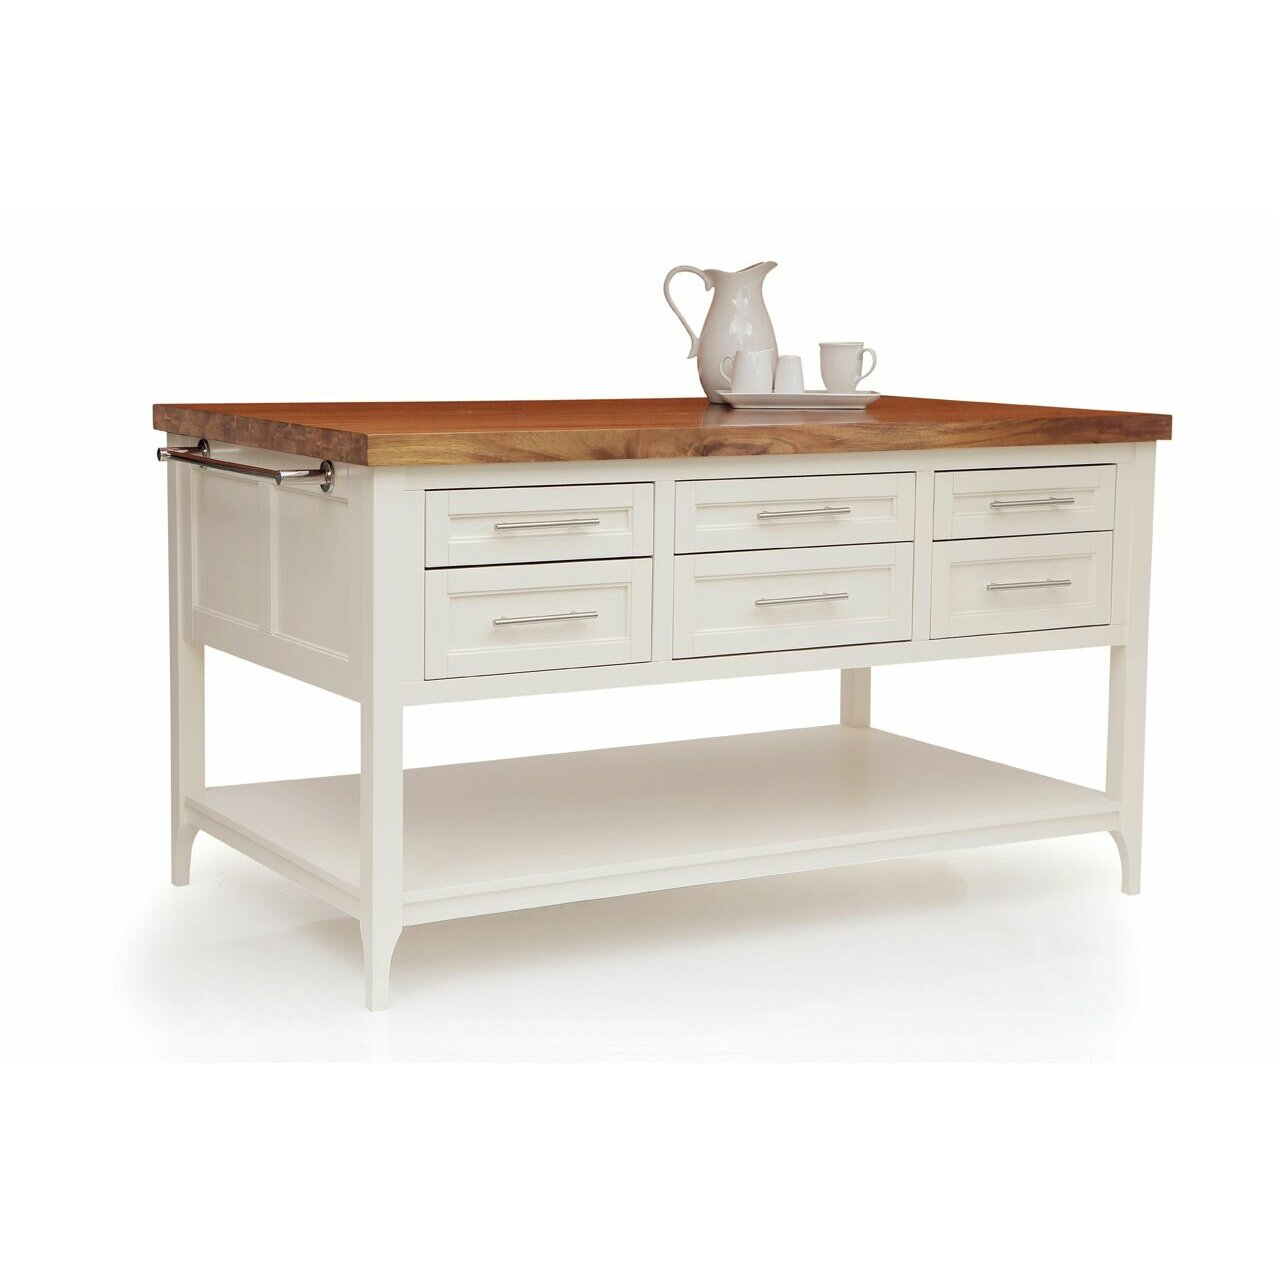 Kitchen Island Furniture: 222 Fifth Furniture Gramercy Kitchen Island